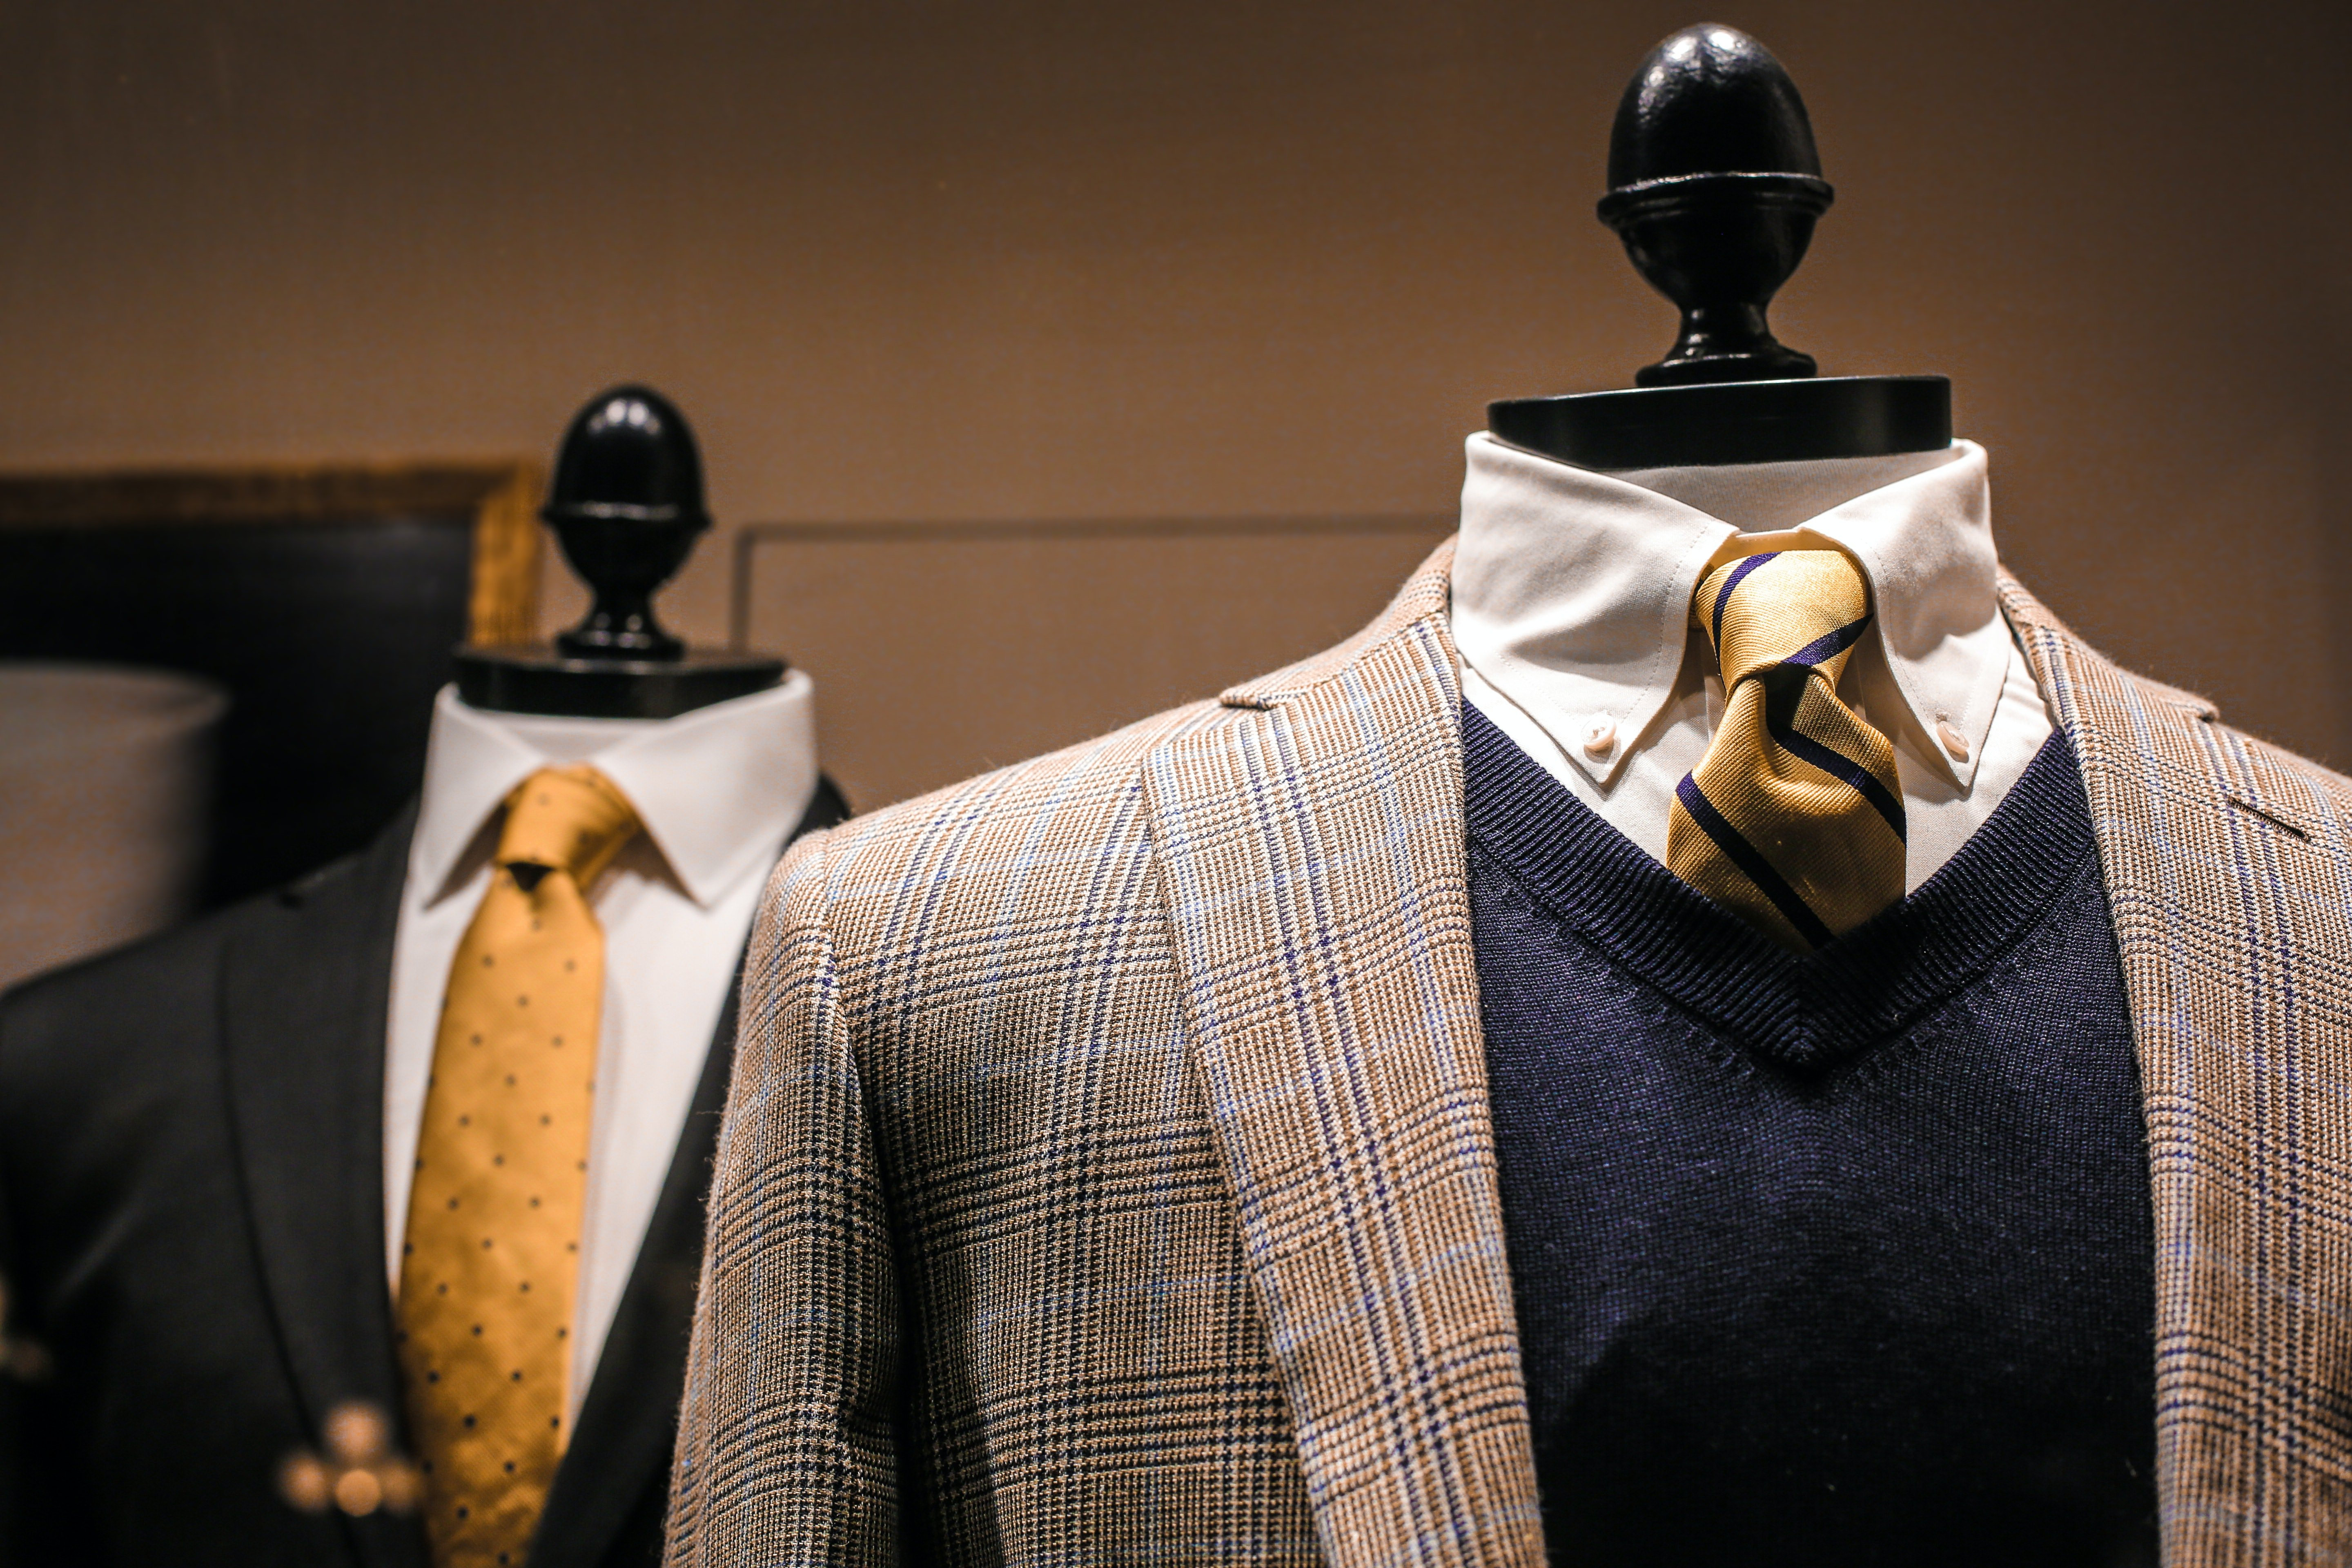 Pictured - Male outfits on dummies in a modern boutique   Source: Pexels